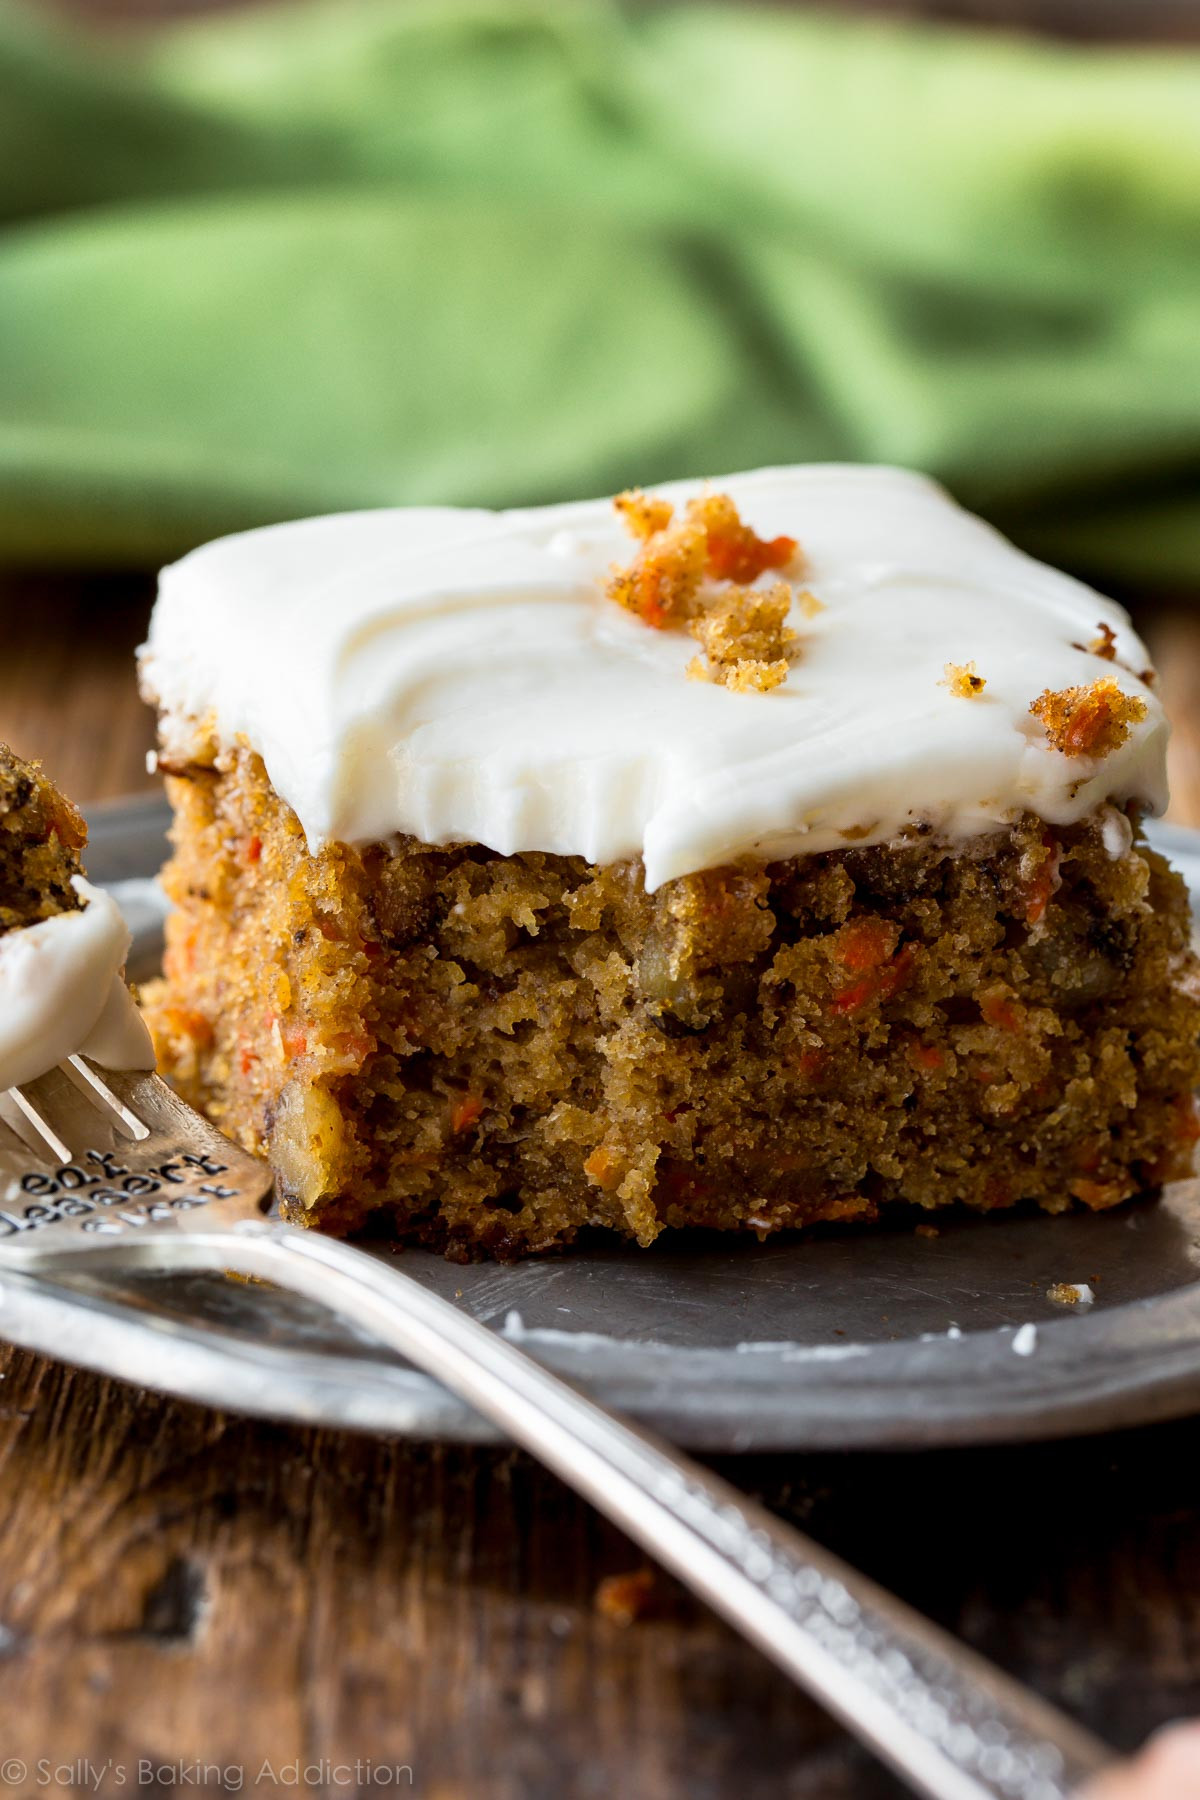 Healthy Carrot Cake Recipe With Pineapple  Pineapple Carrot Cake with Cream Cheese Frosting Sallys